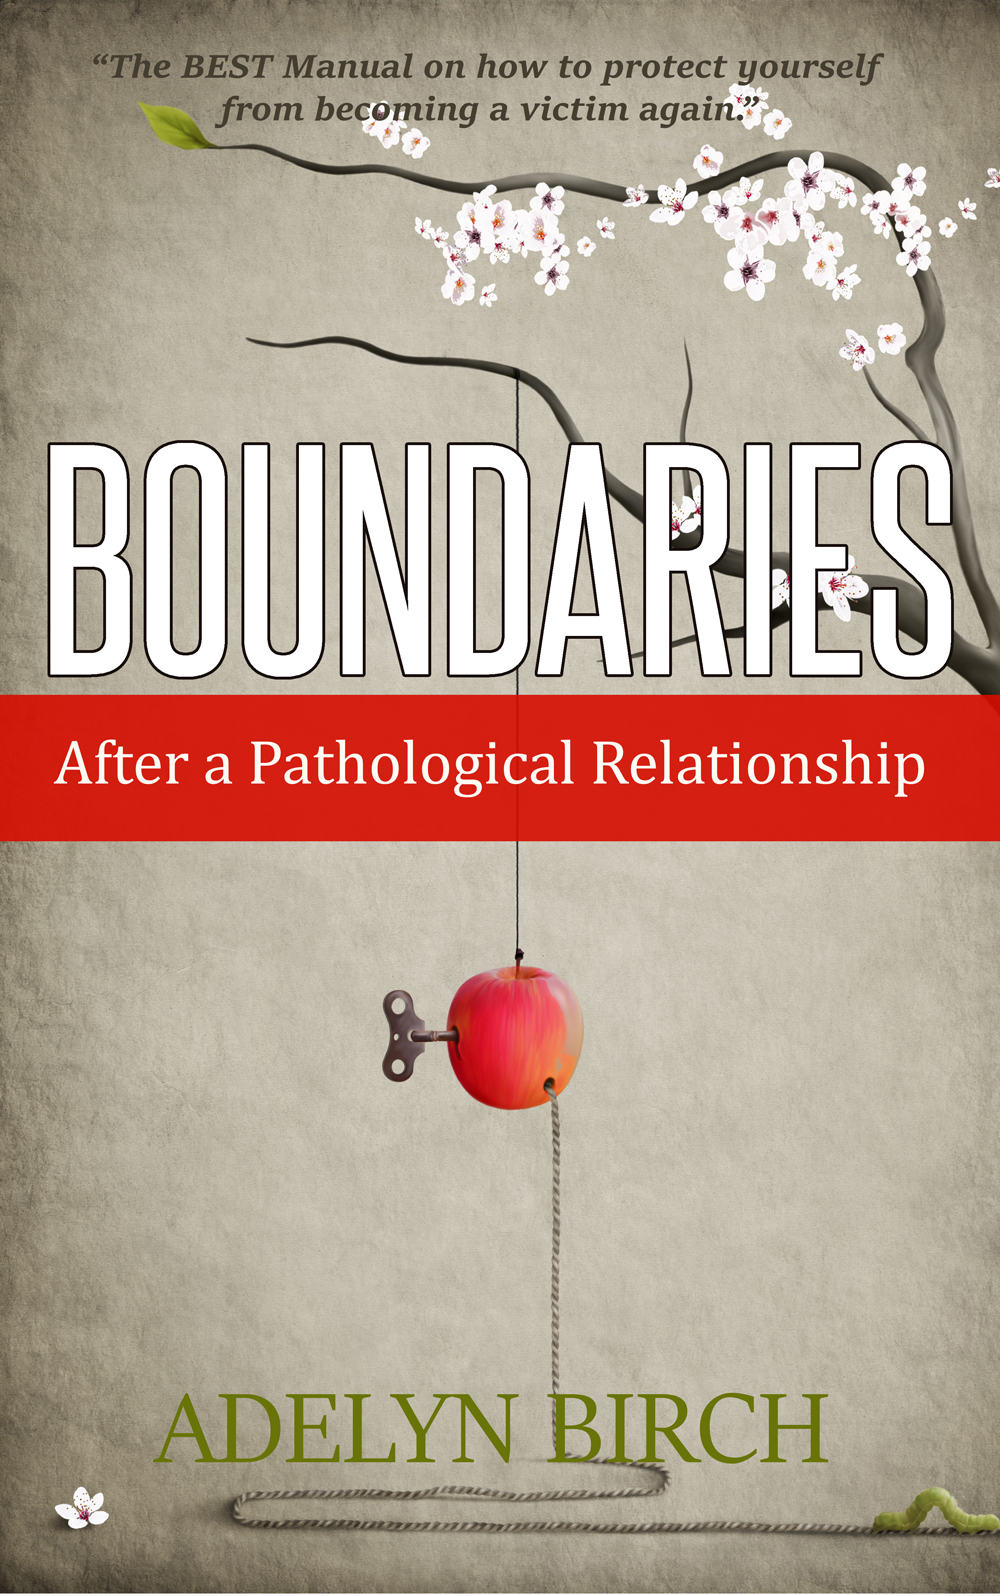 BOUNDARIES: Protect Yourself After a Pathological Relationship